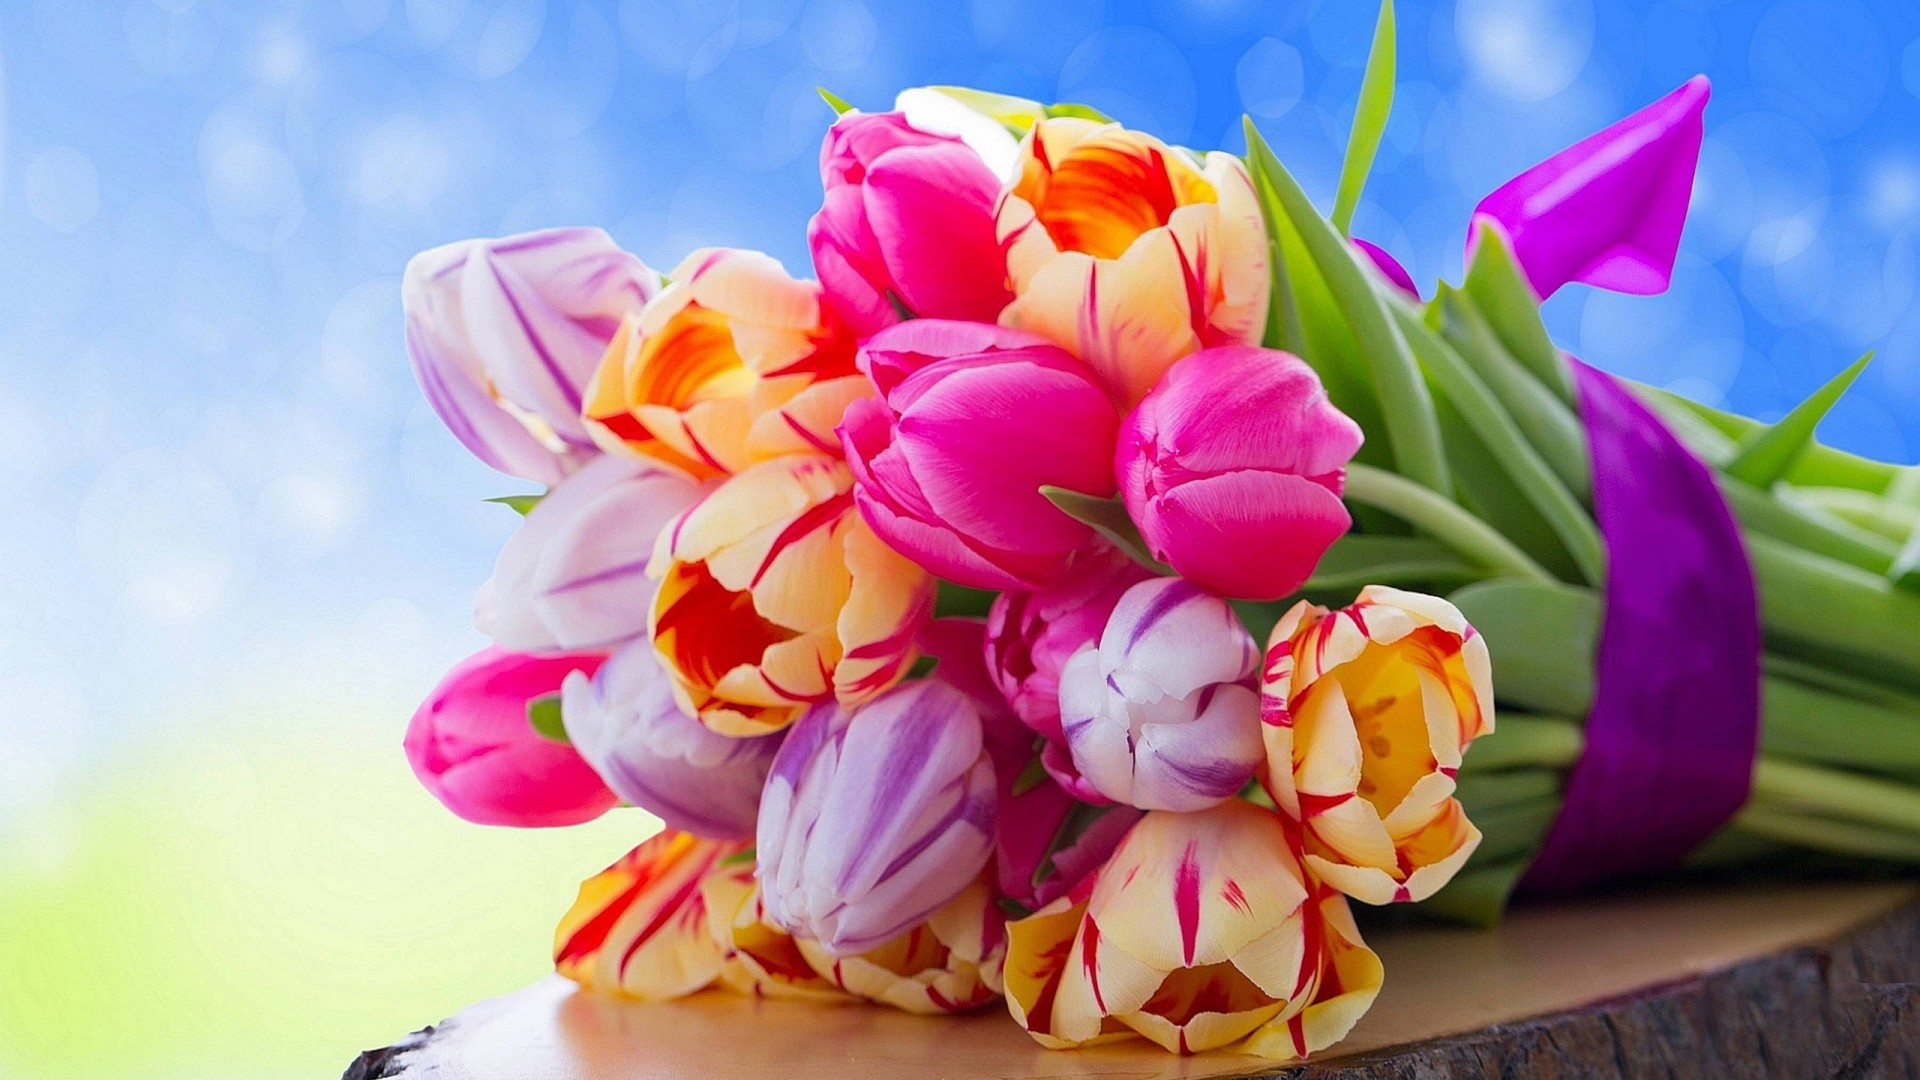 10% off Florist by Waitrose & Partners – Florist by Waitrose & Partners Voucher Code